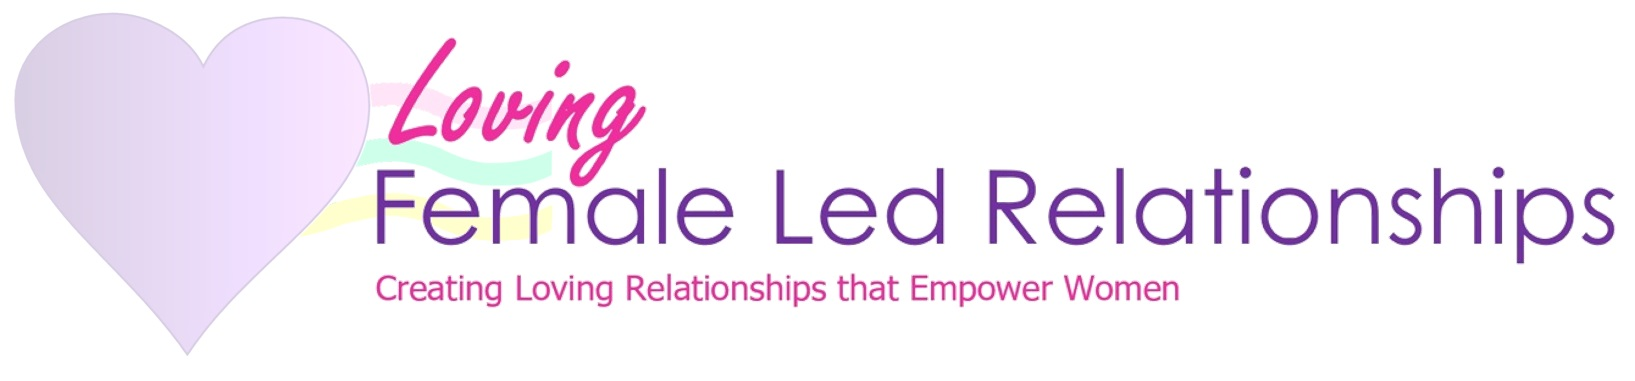 female led relationships dommesubmissive relationships - 1635×381